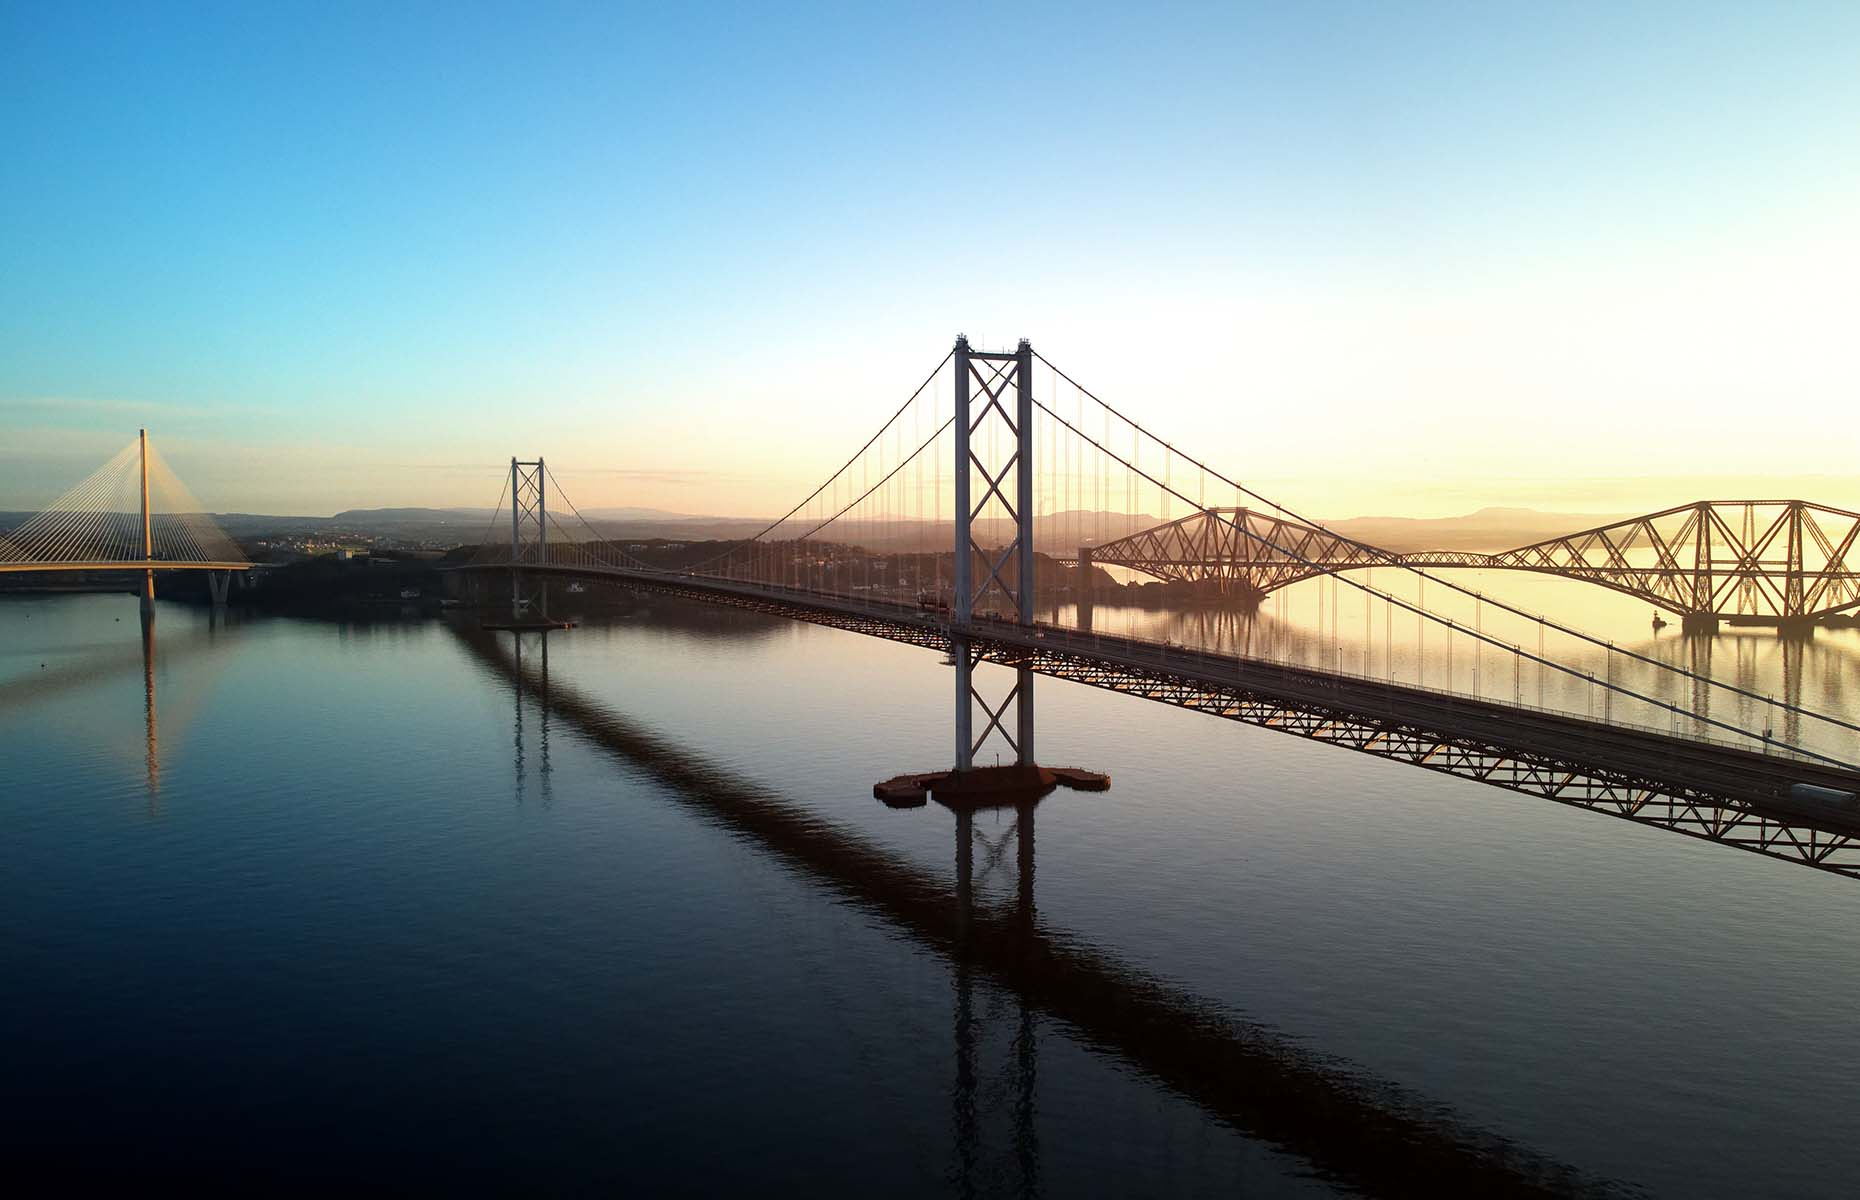 Forth Bridges in Scotland (Image: Tana888/Shutterstock)